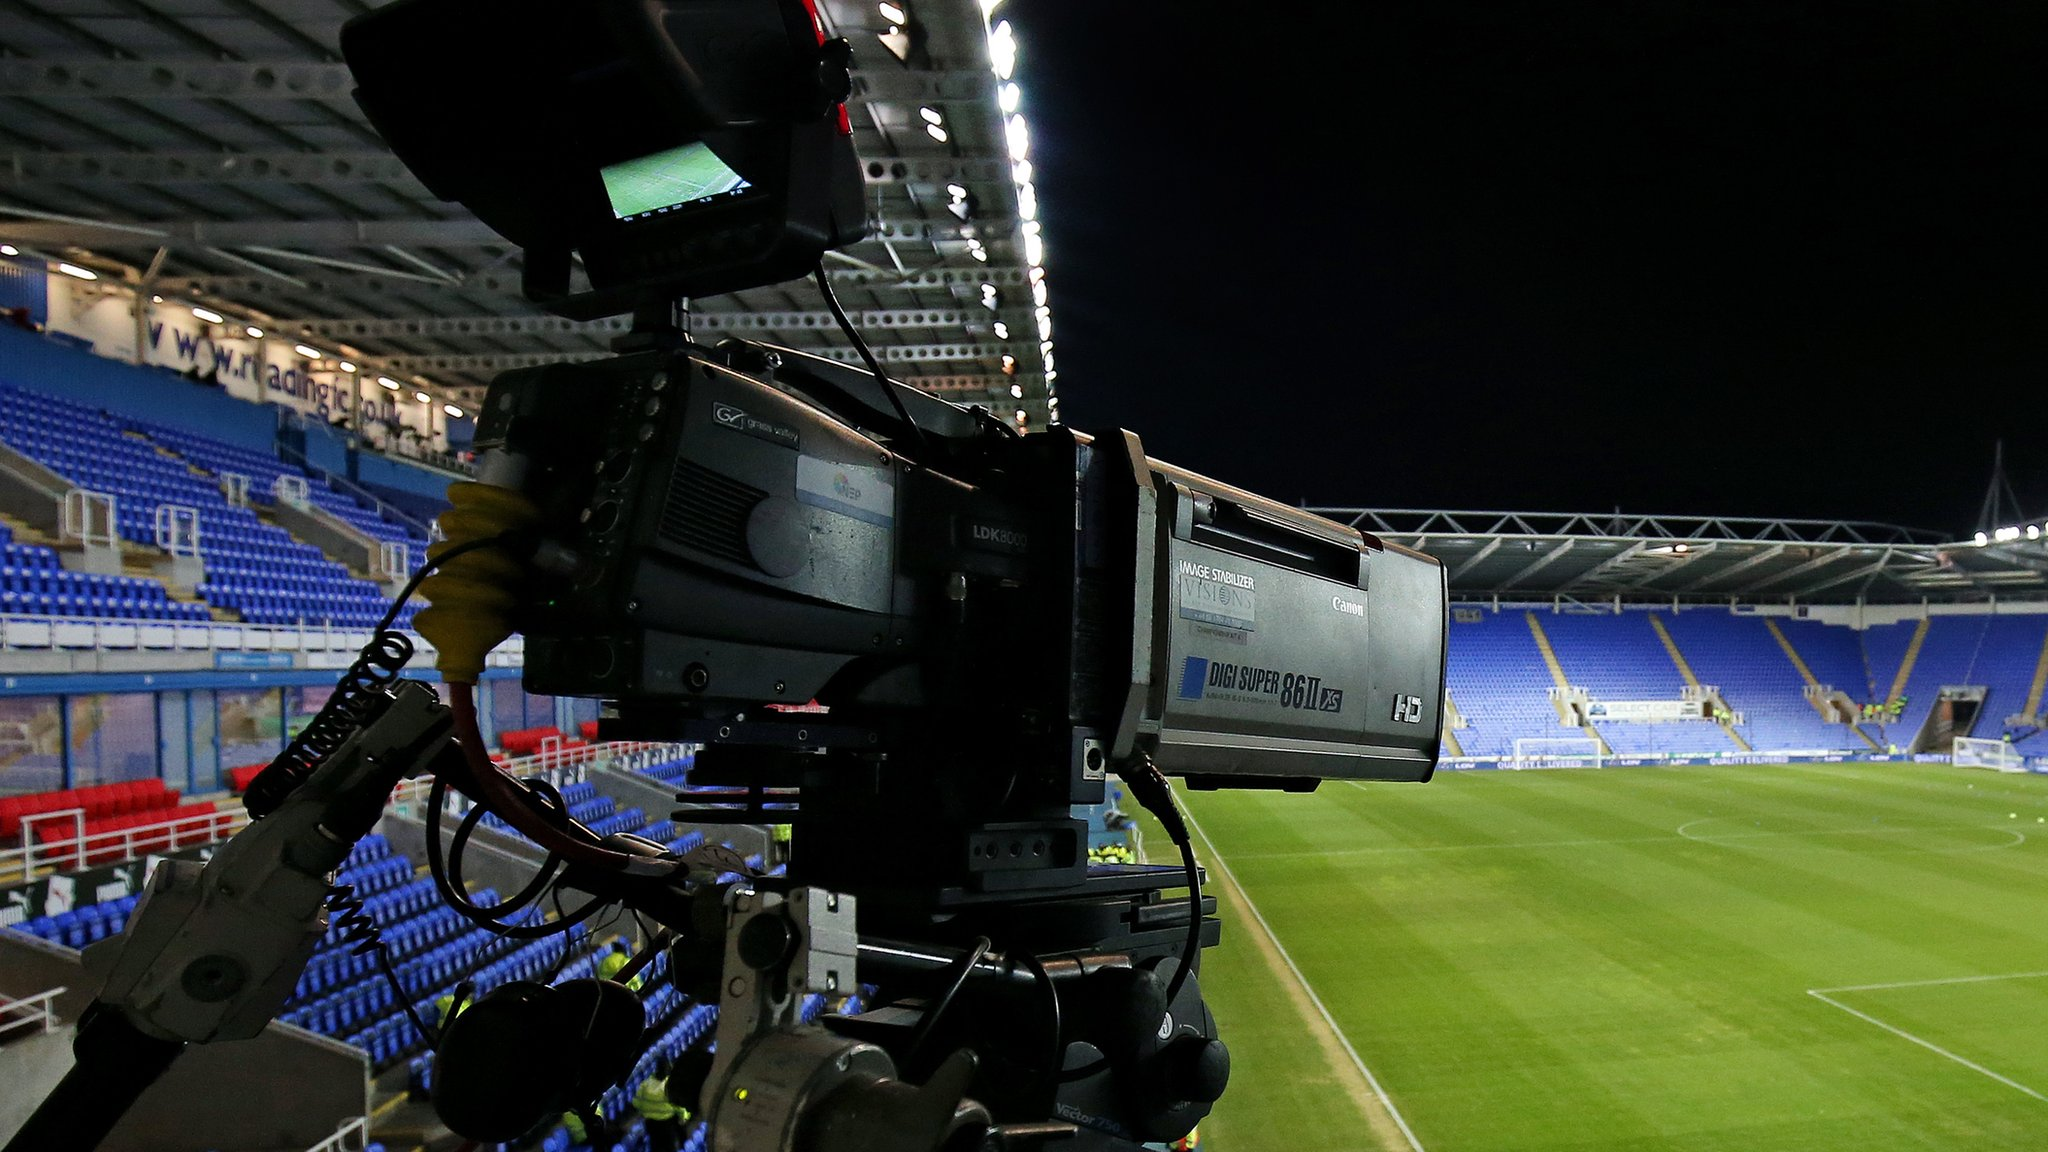 Championship clubs 'gravely concerned' by new TV deal